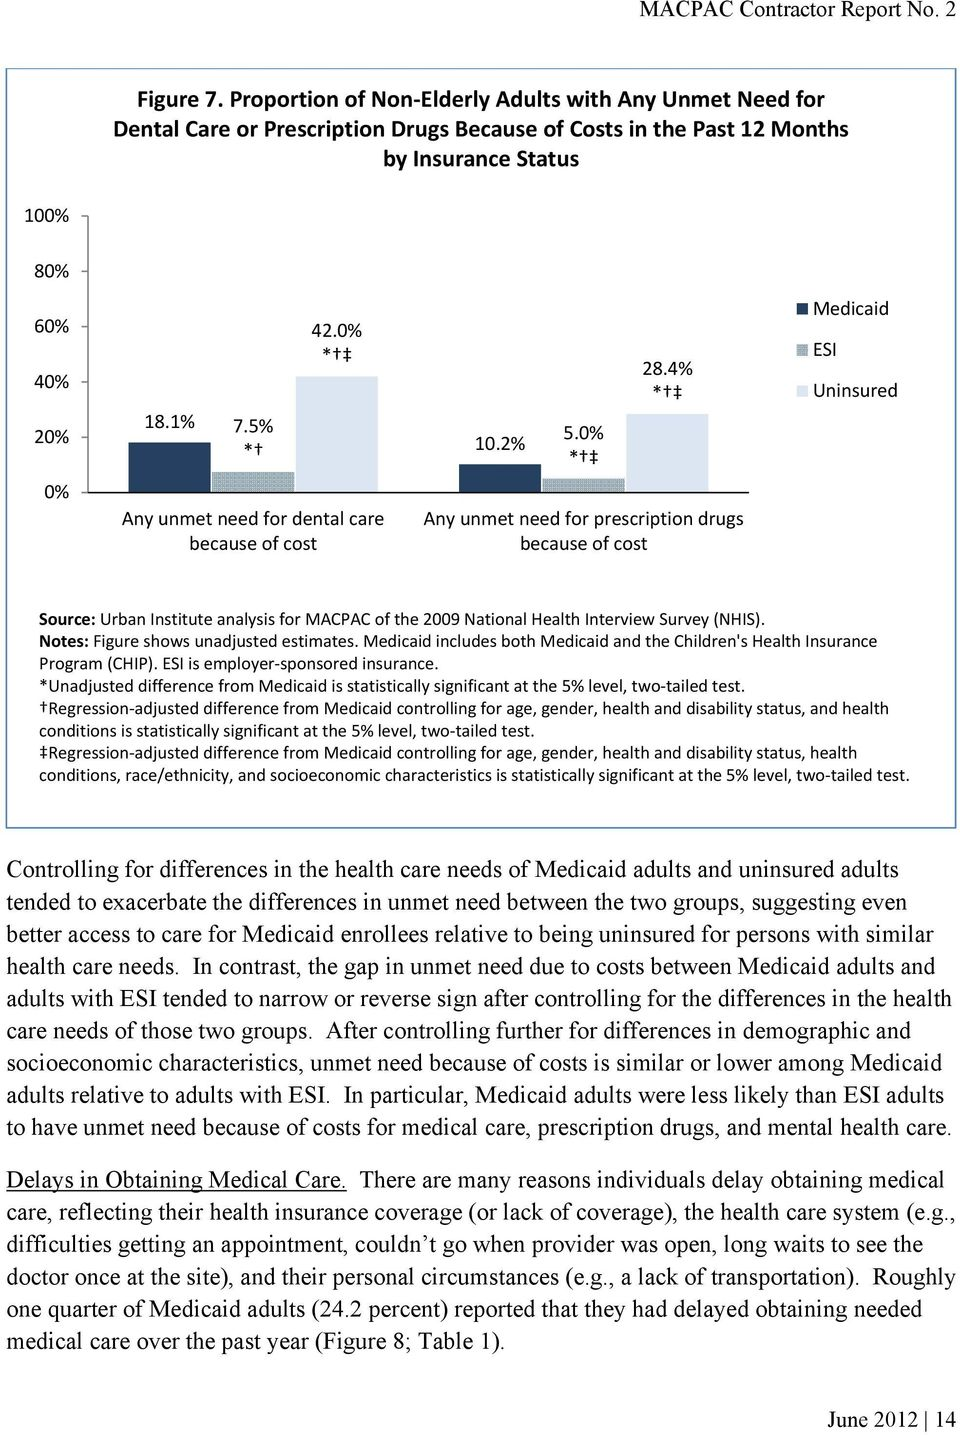 4% * Medicaid ESI Uninsured 0% Any unmet need for dental care because of cost Any unmet need for prescription drugs because of cost Source: Urban Institute analysis for MACPAC of the 2009 National